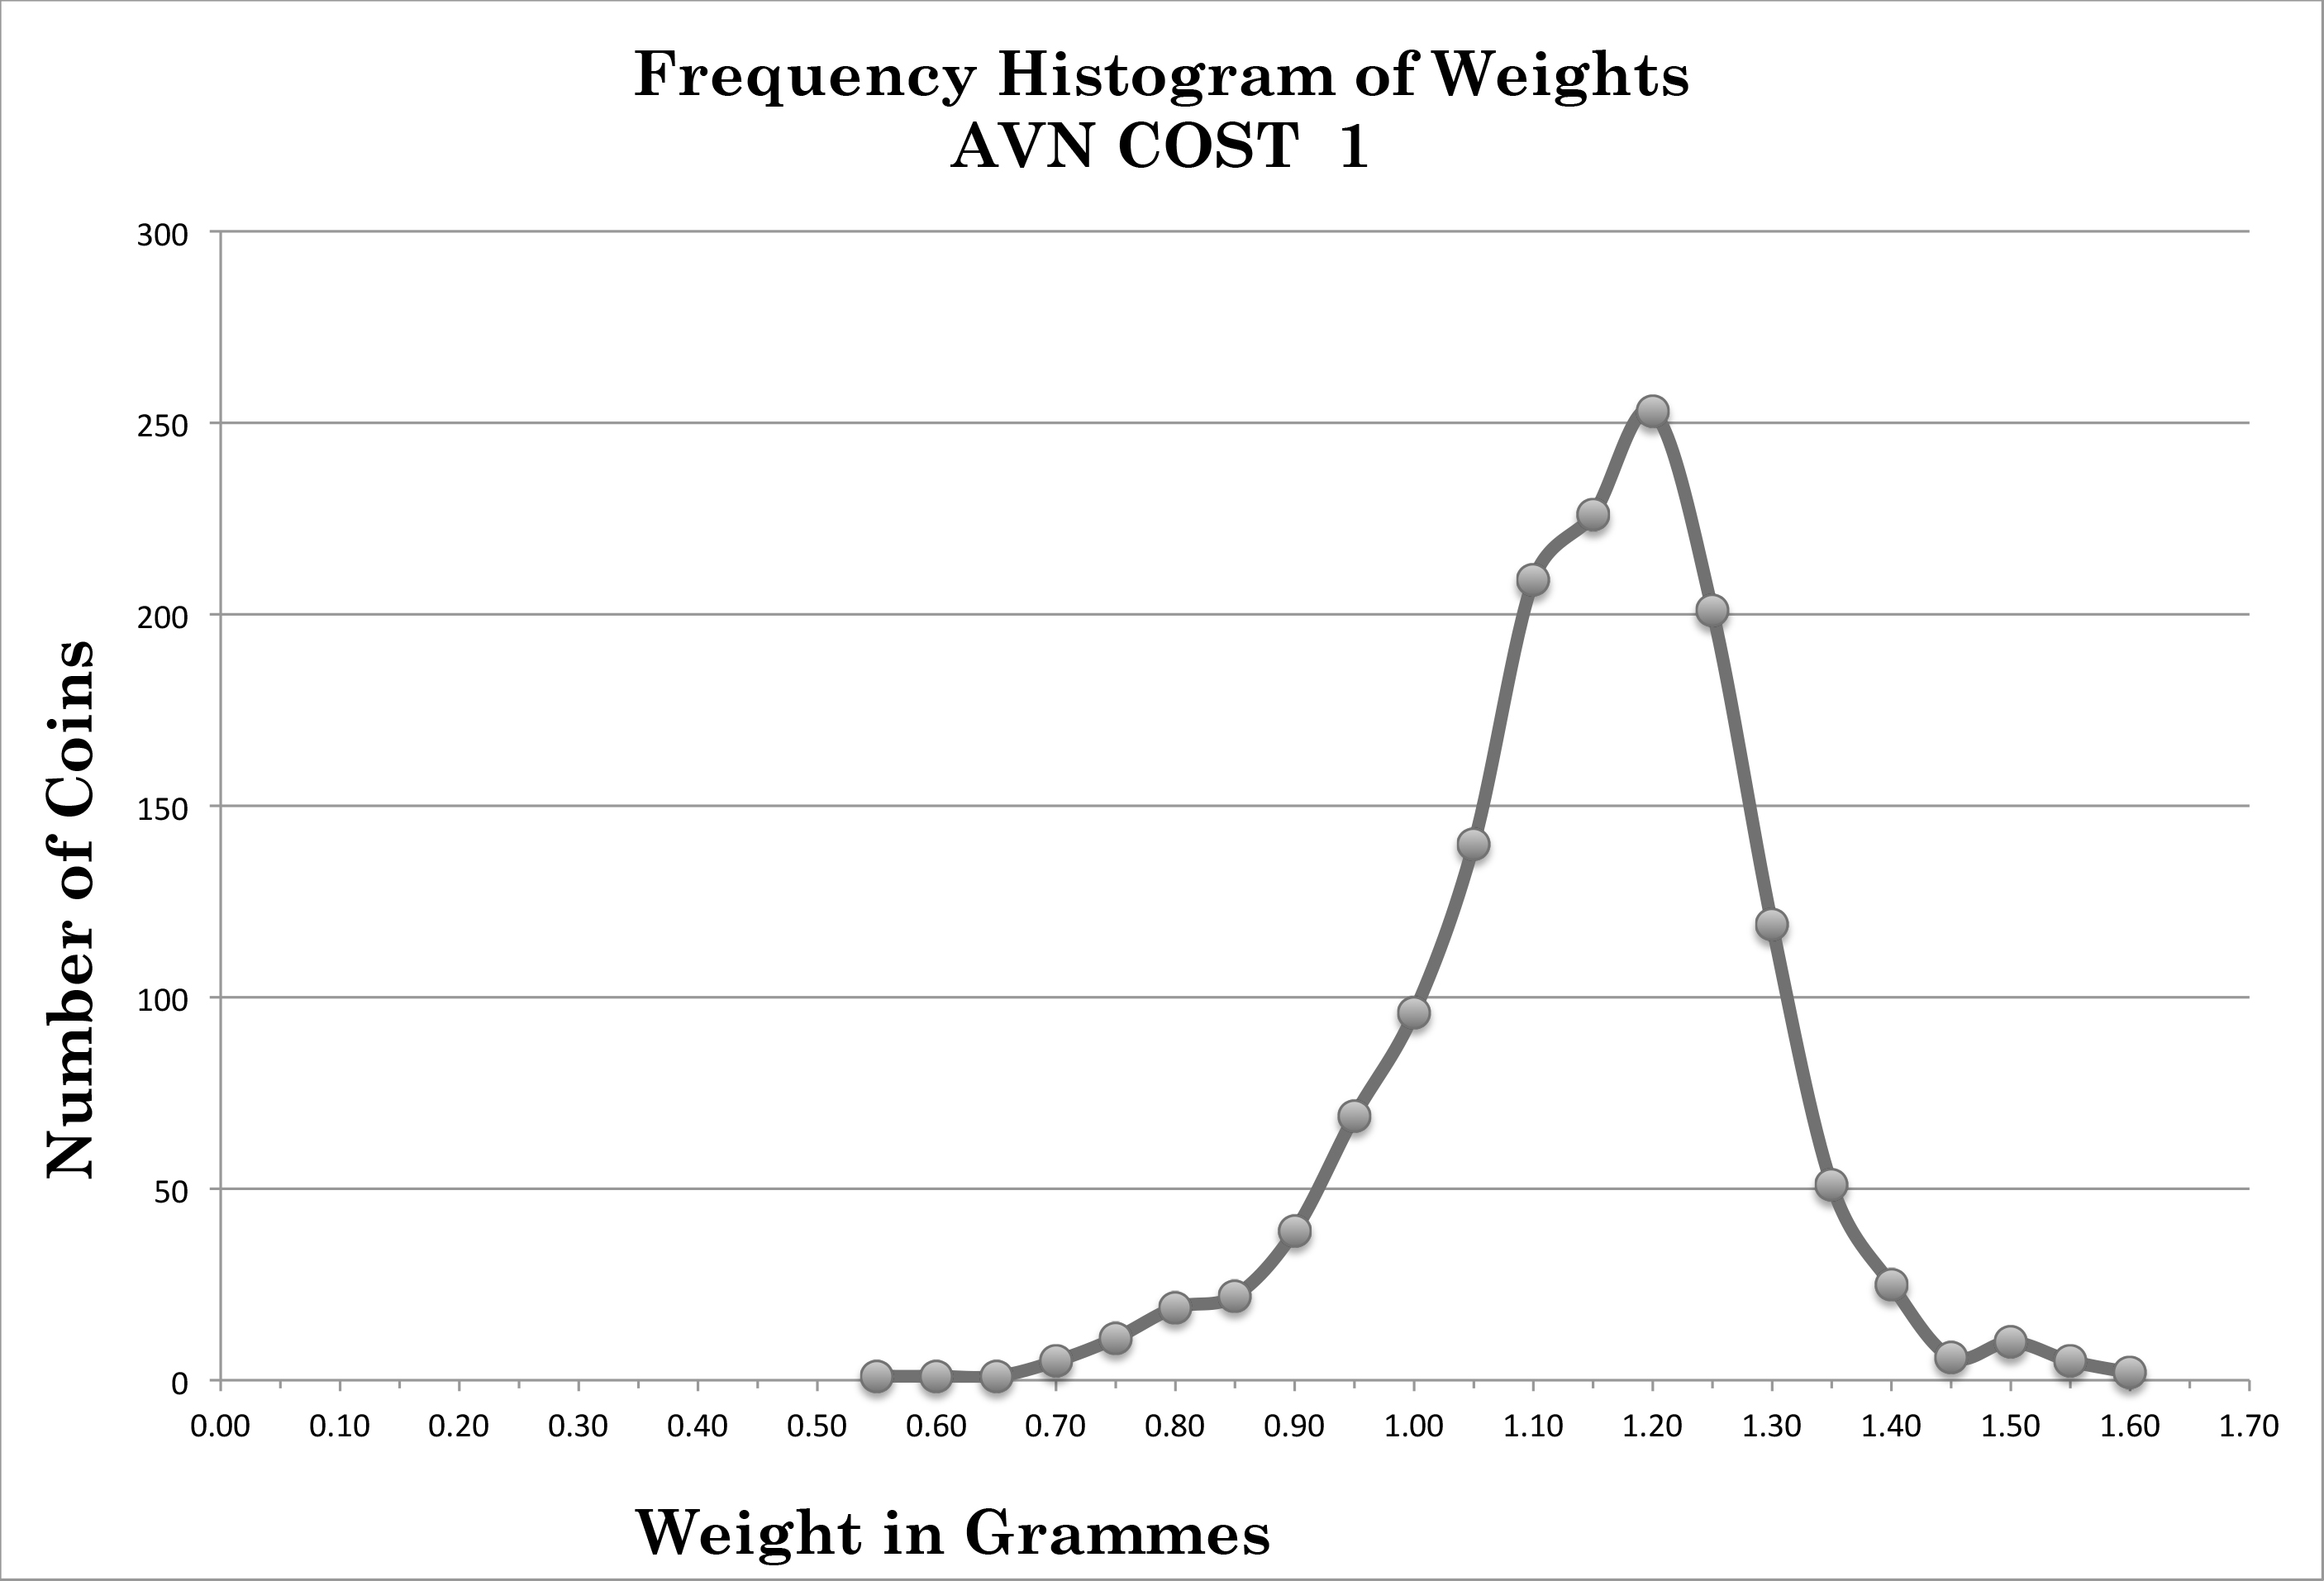 AVN COST frequency histogram